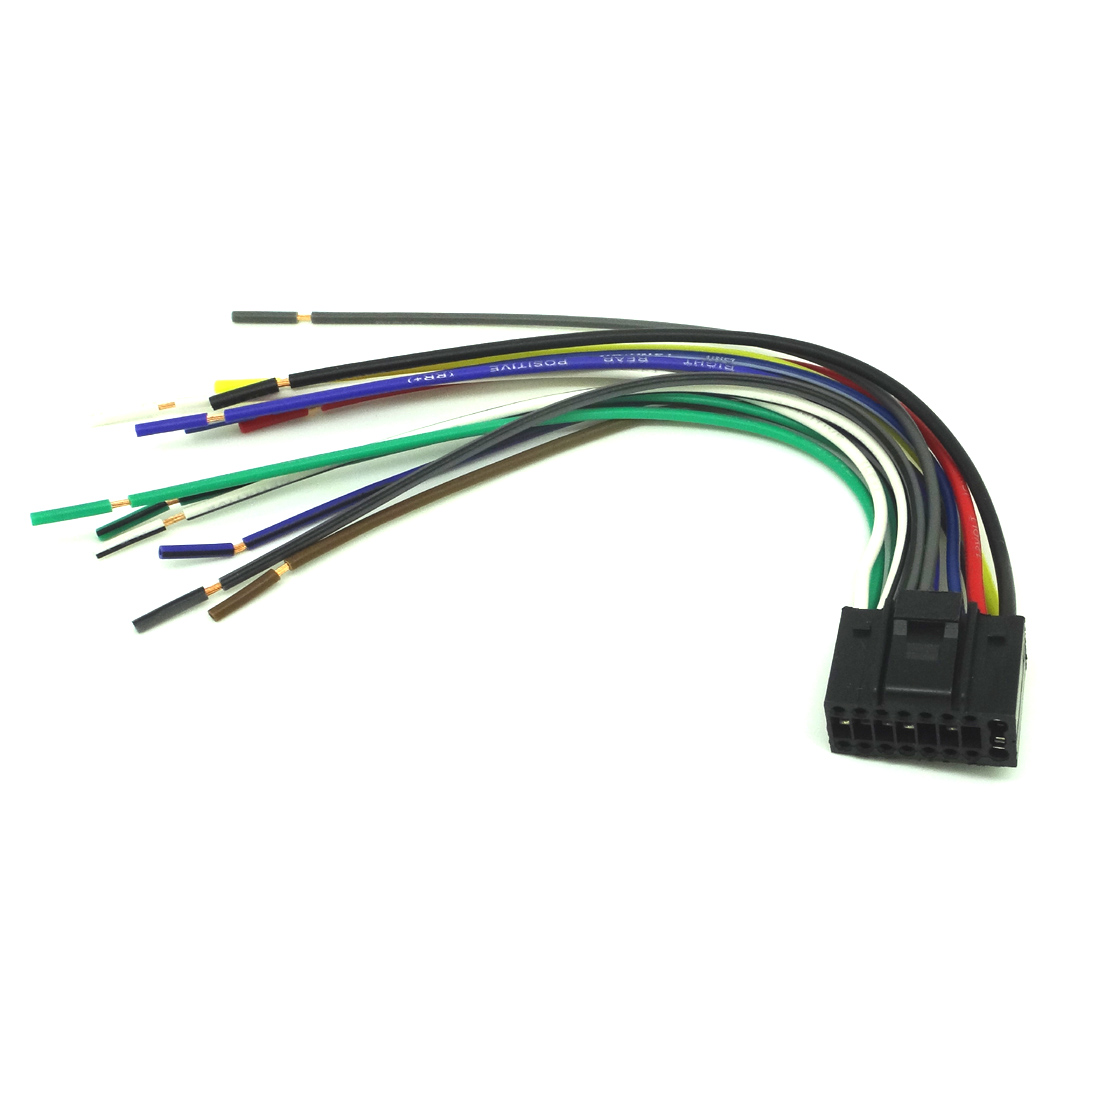 Wiring Diagram For Kenwood Kdc X590 : Player pin radio car audio stereo wire harness for